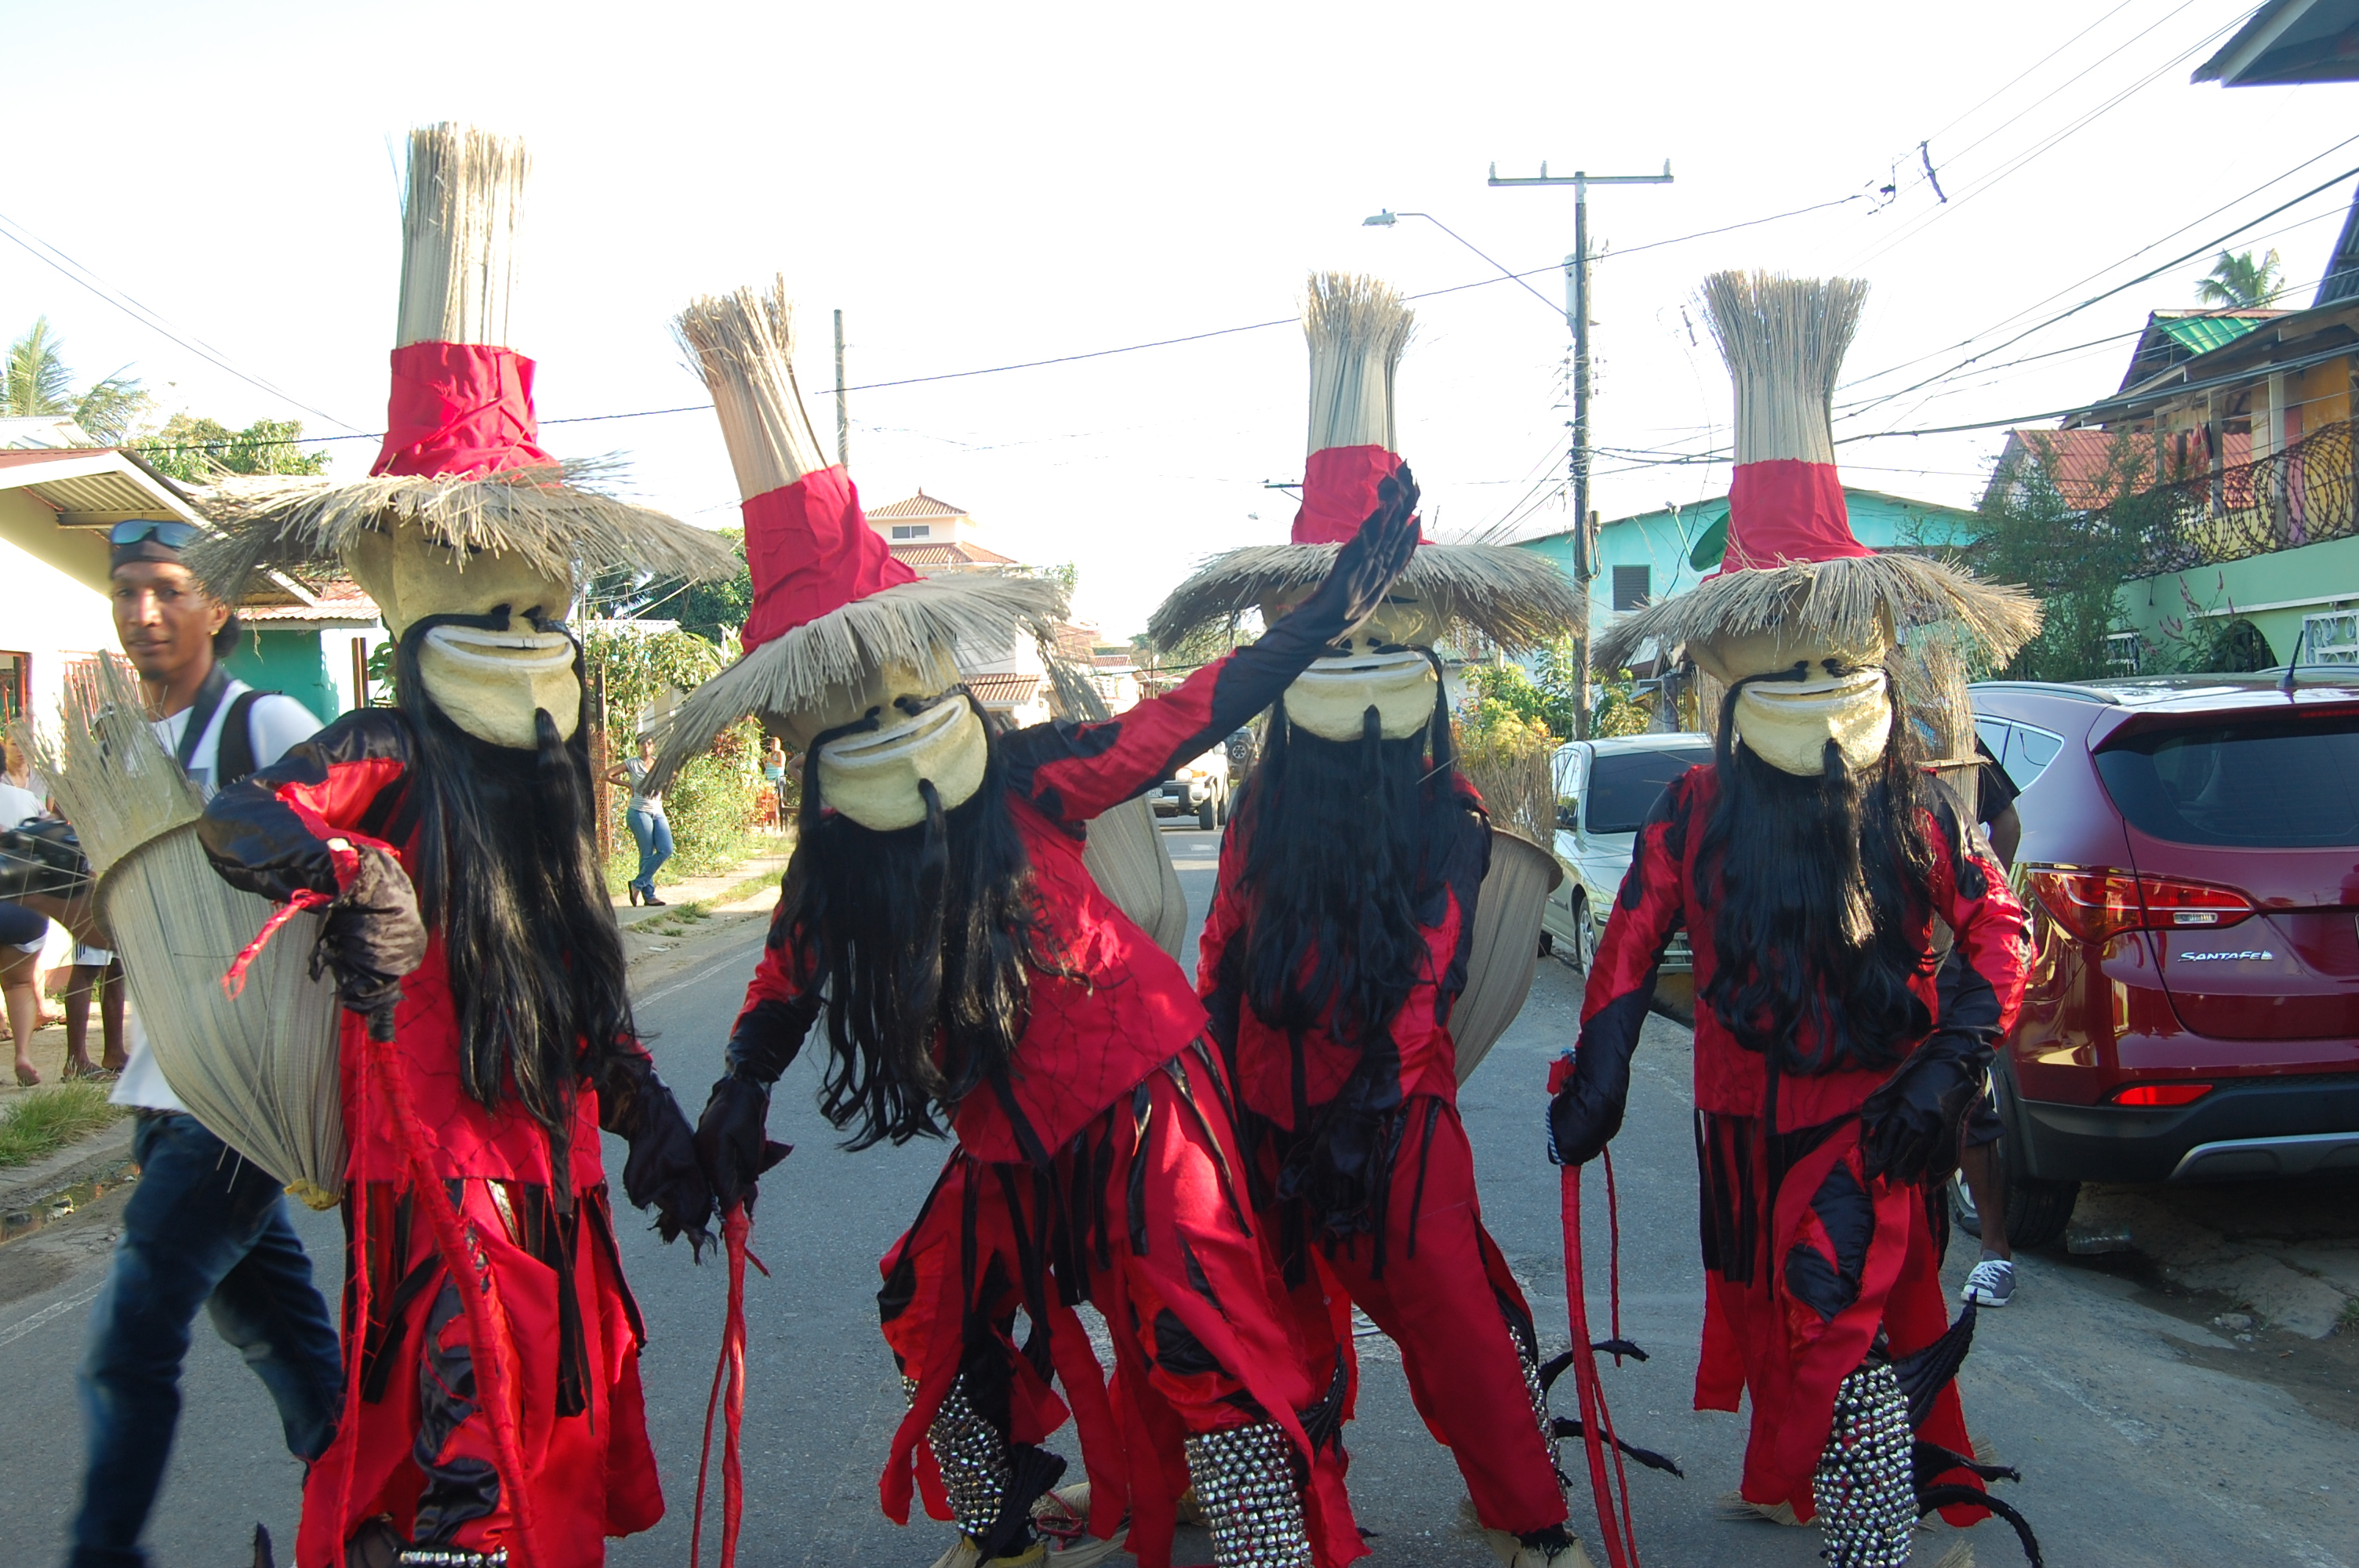 Locals dressed up in customs for Bocas del Toro's Carnival